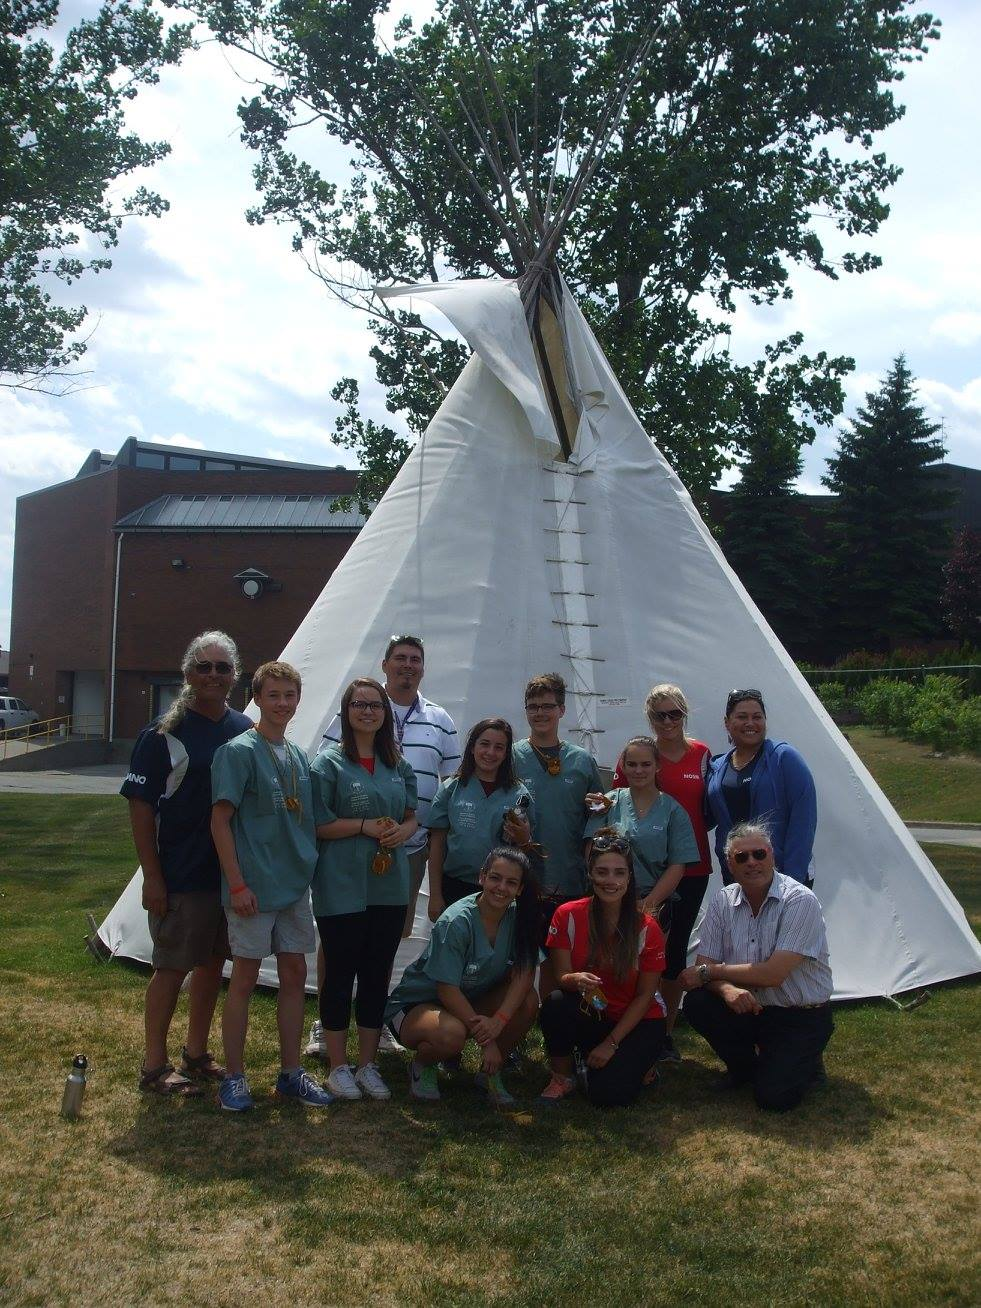 Camper team poses with NOSM staff members in front of teepee at Cambrian College